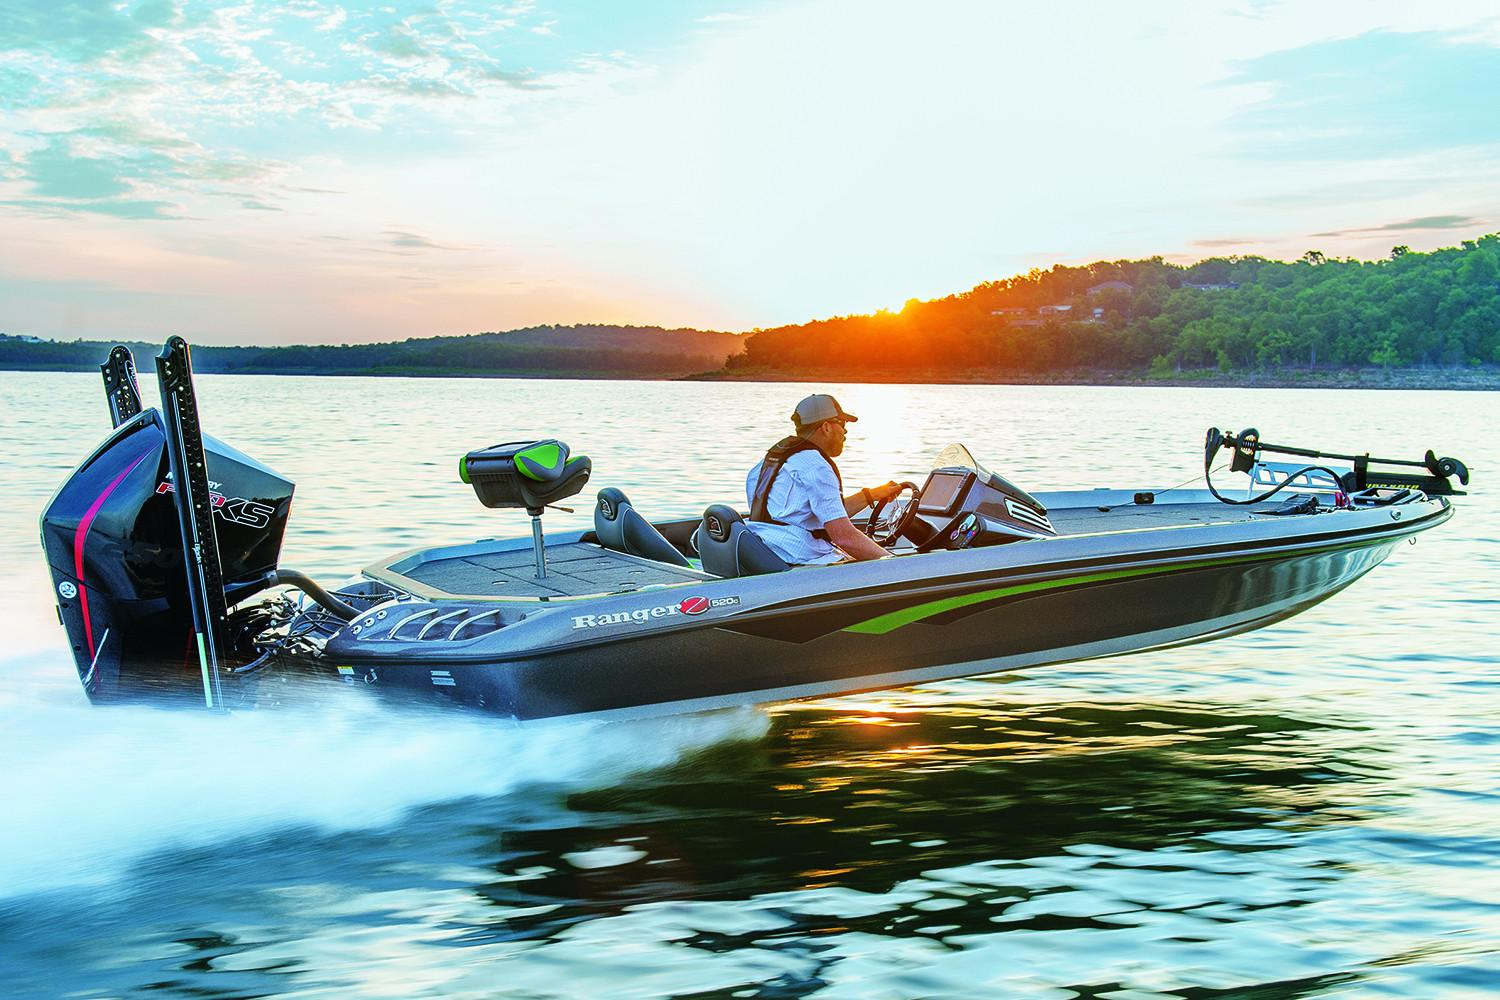 New 2019 Ranger Z520 Comanche Ranger Cup Power Boats